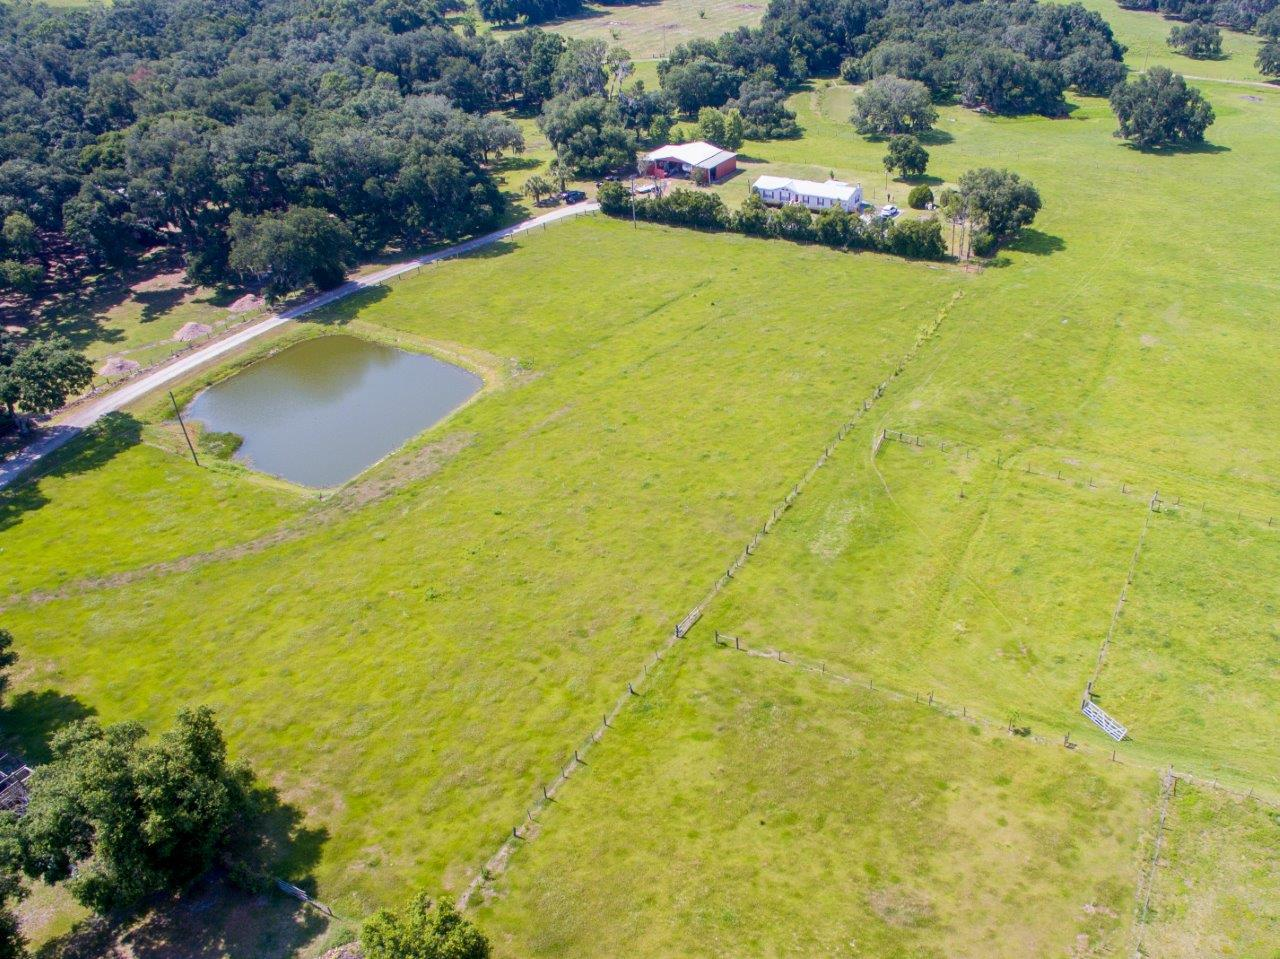 Lanier Road 8 Acres with 1,732 SF Home and Additional Homesite in Plant City, FL